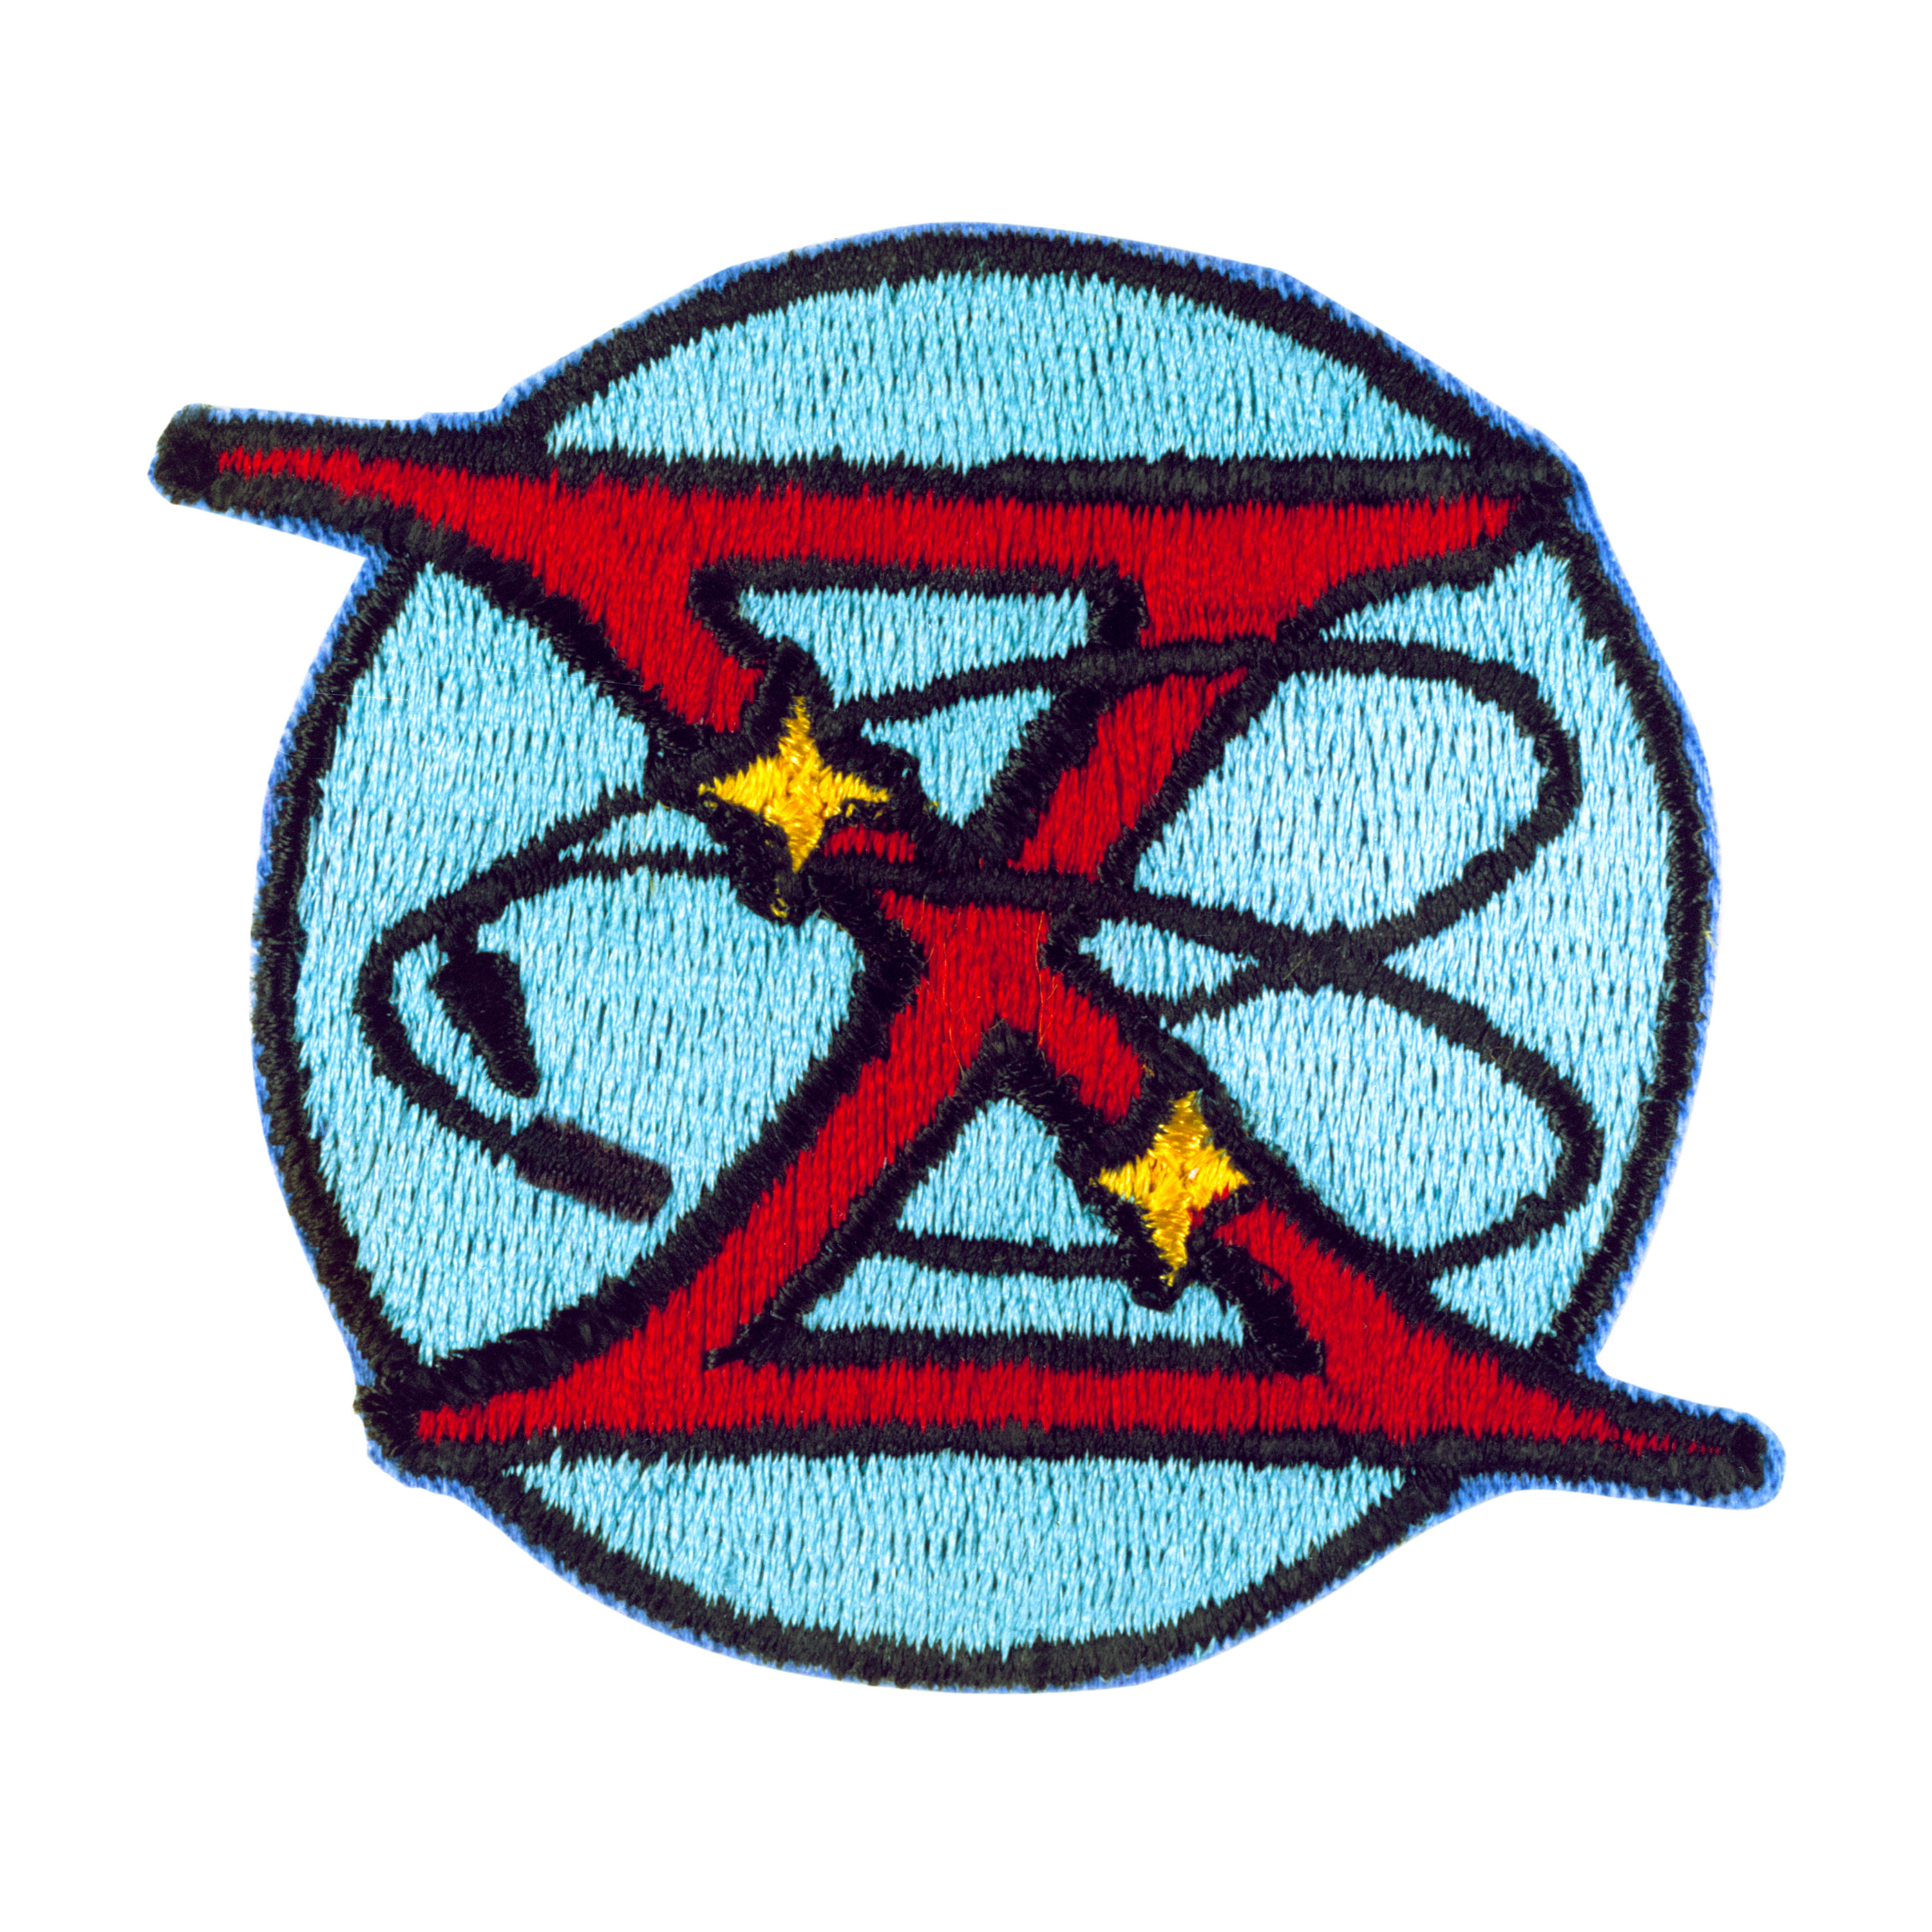 gemini space mission badges - photo #44